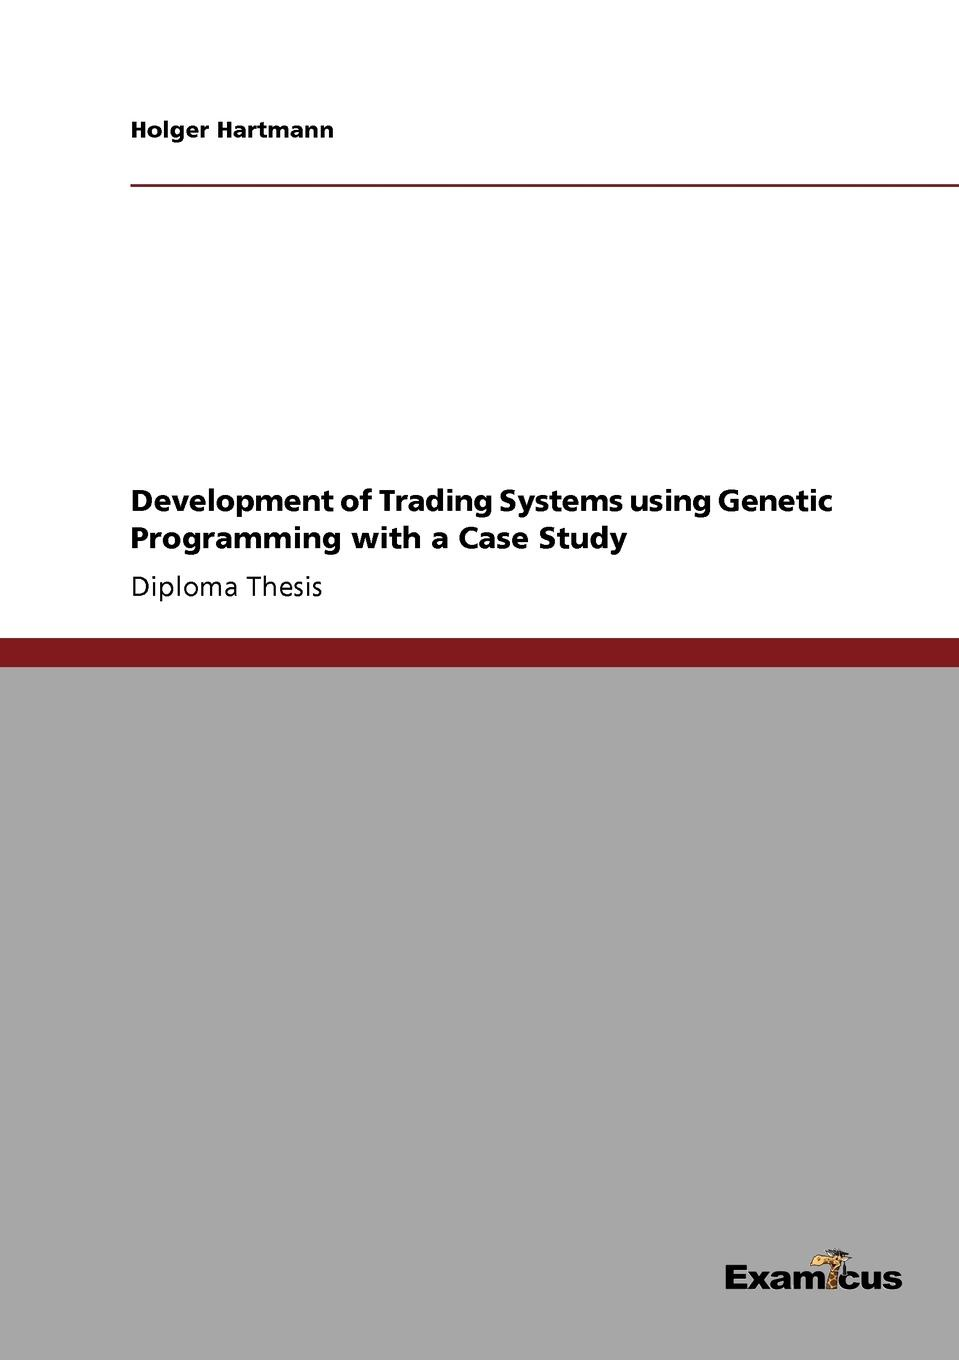 Holger Hartmann Development of Trading Systems using Genetic Programming with a Case Study genetic programming